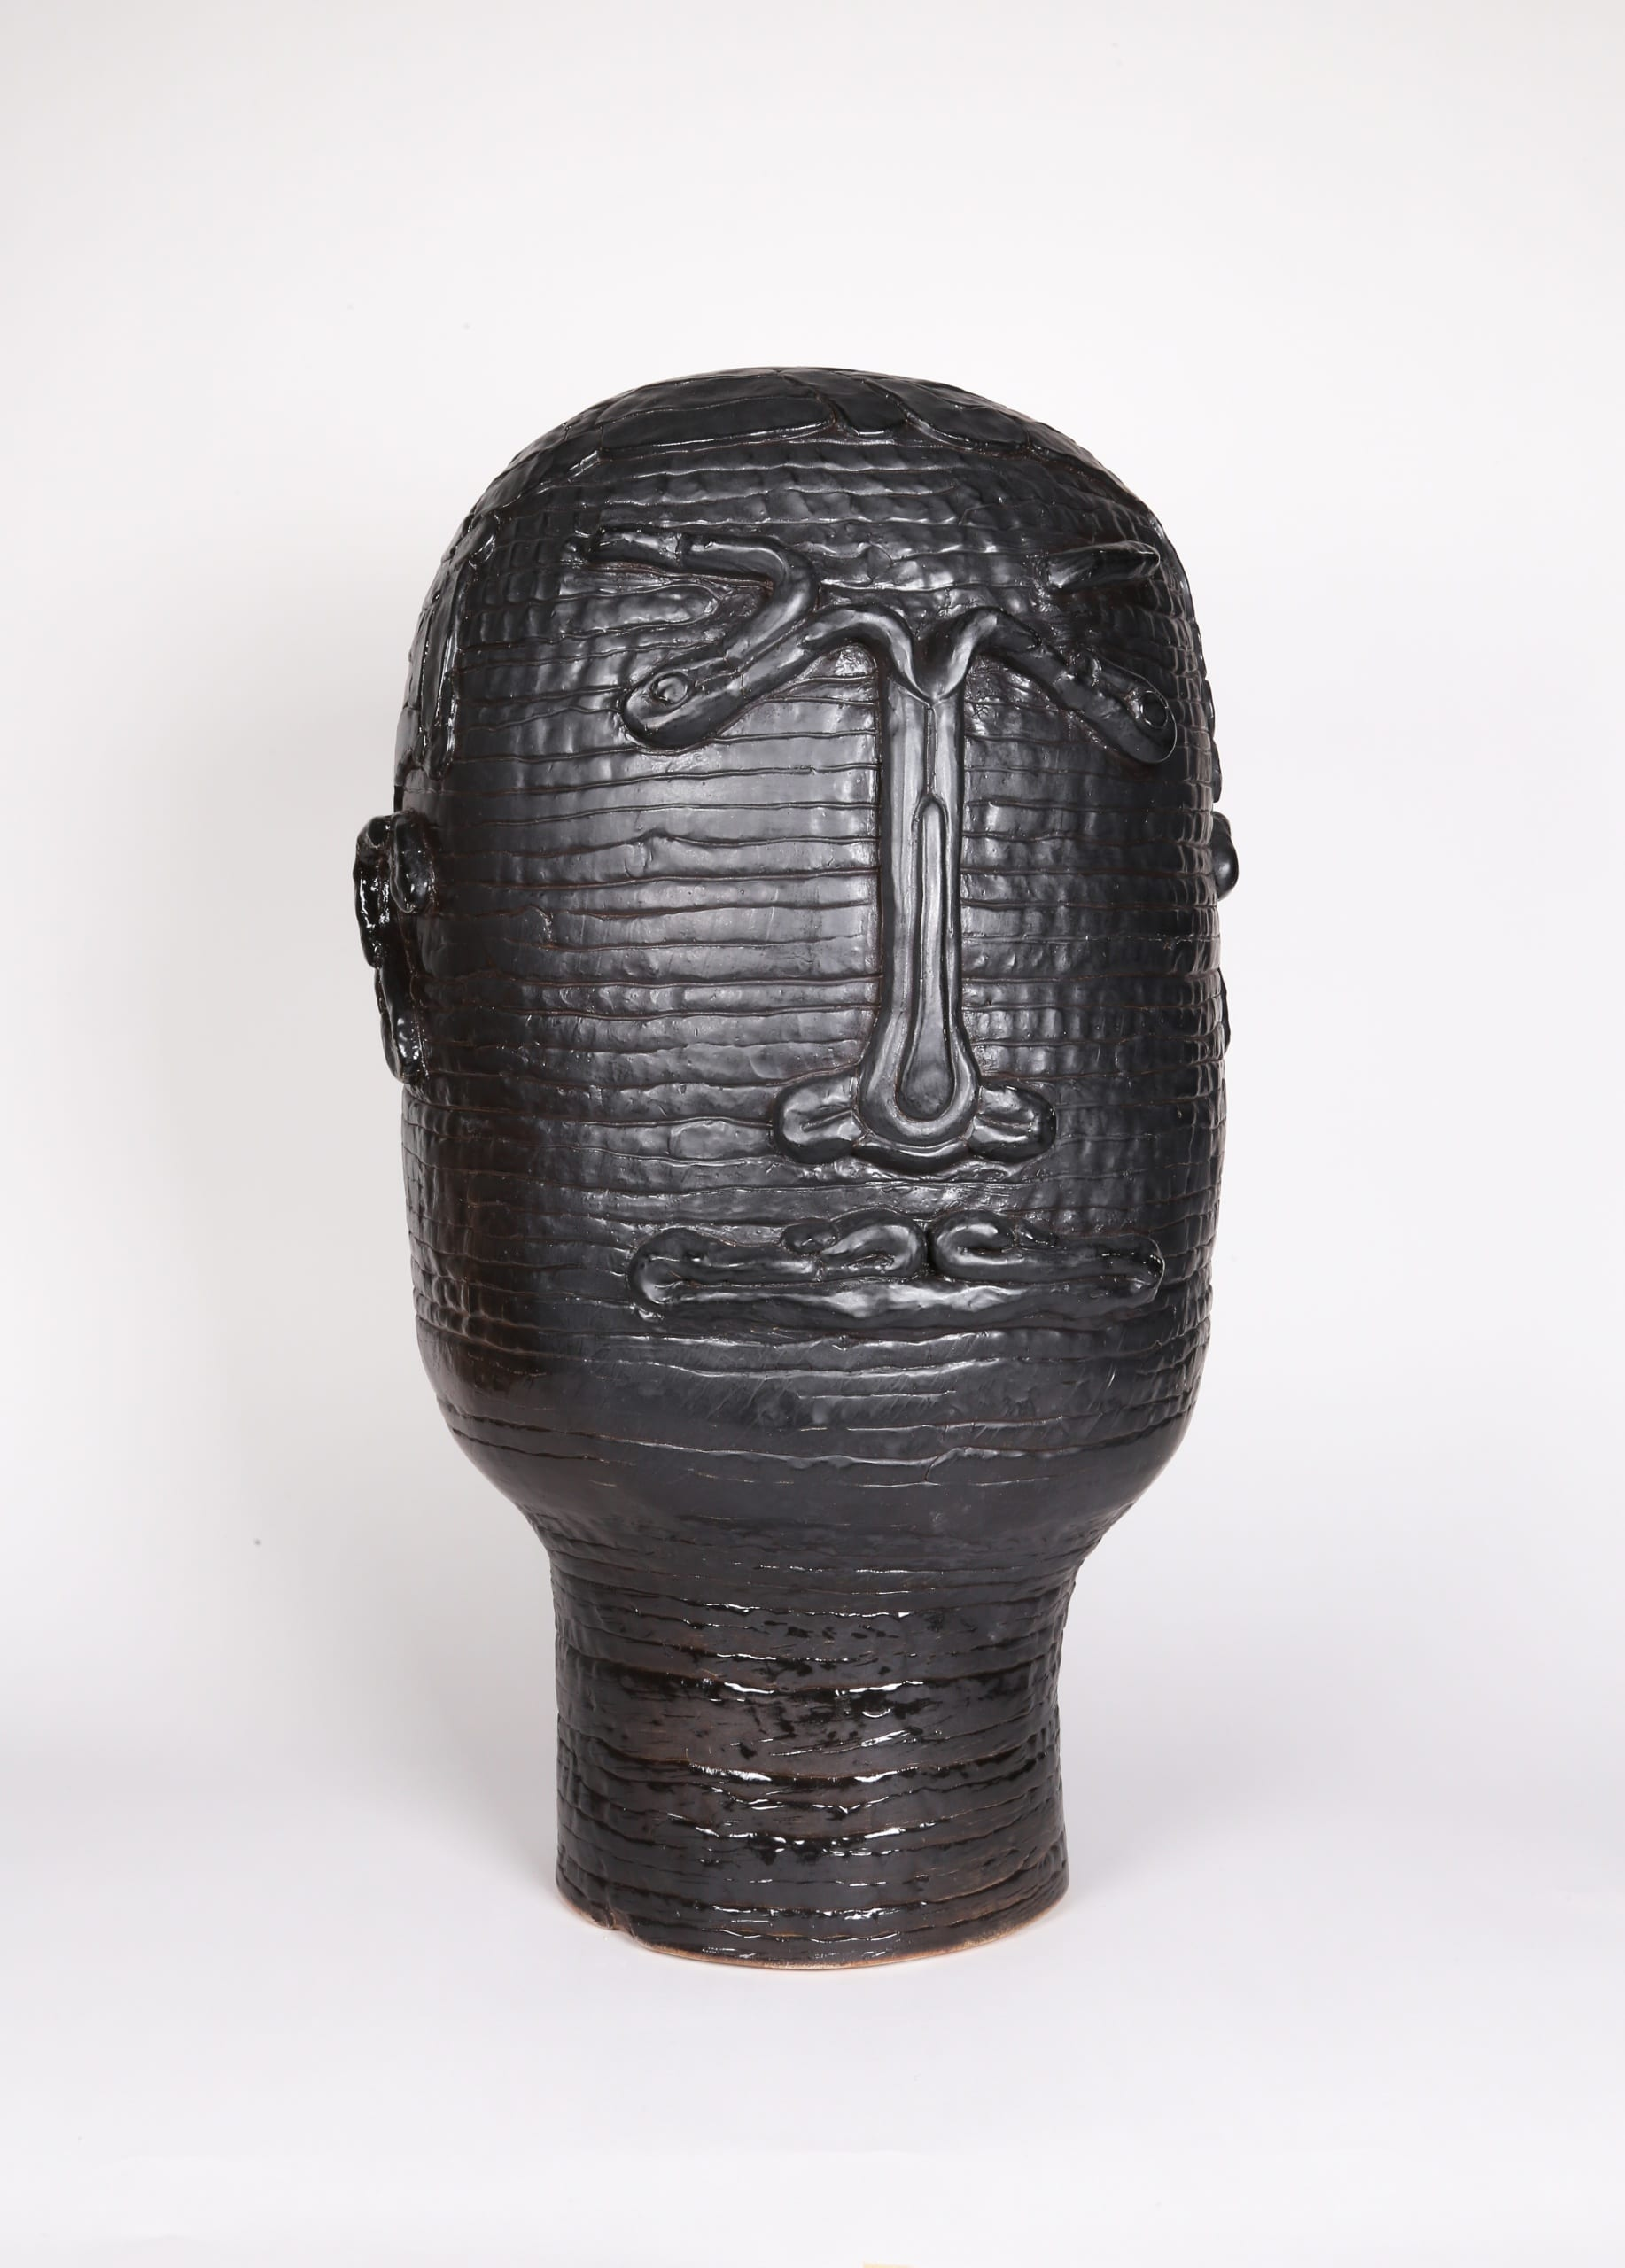 Color photograph with a frontal view of an abstract ceramic portrait head that appears to be made from a long coil of clay. The outline of two eyes, a nose, a mouth, and two ears are affixed to its surface. The object is a monochromatic black with a slight sheen to the glaze.